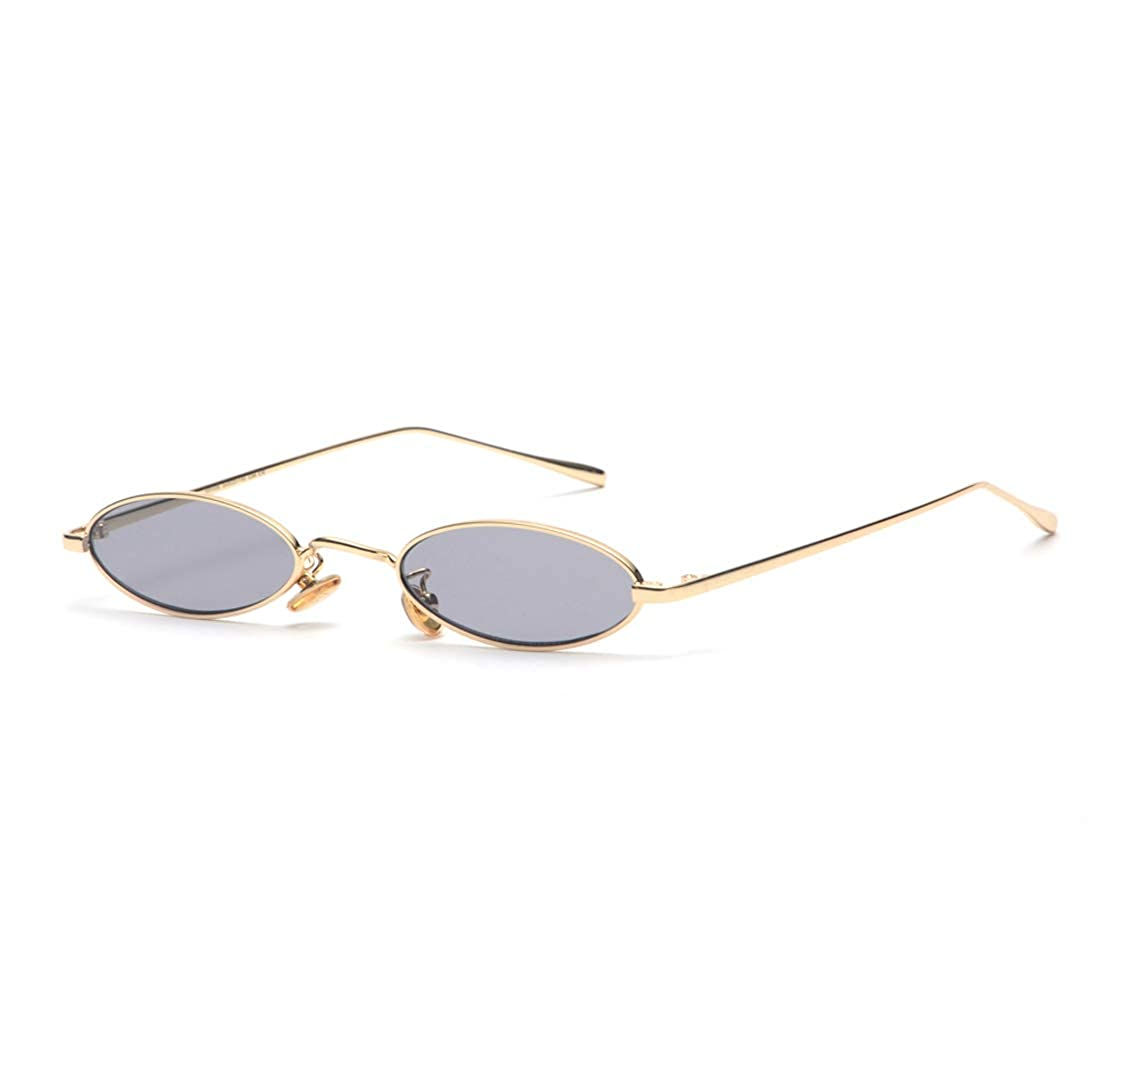 0a65720942 Amazon.com  Gamt Vintage Oval Sunglasses for Women and Men Small Metal  Frame Candy Colors Grey  Clothing